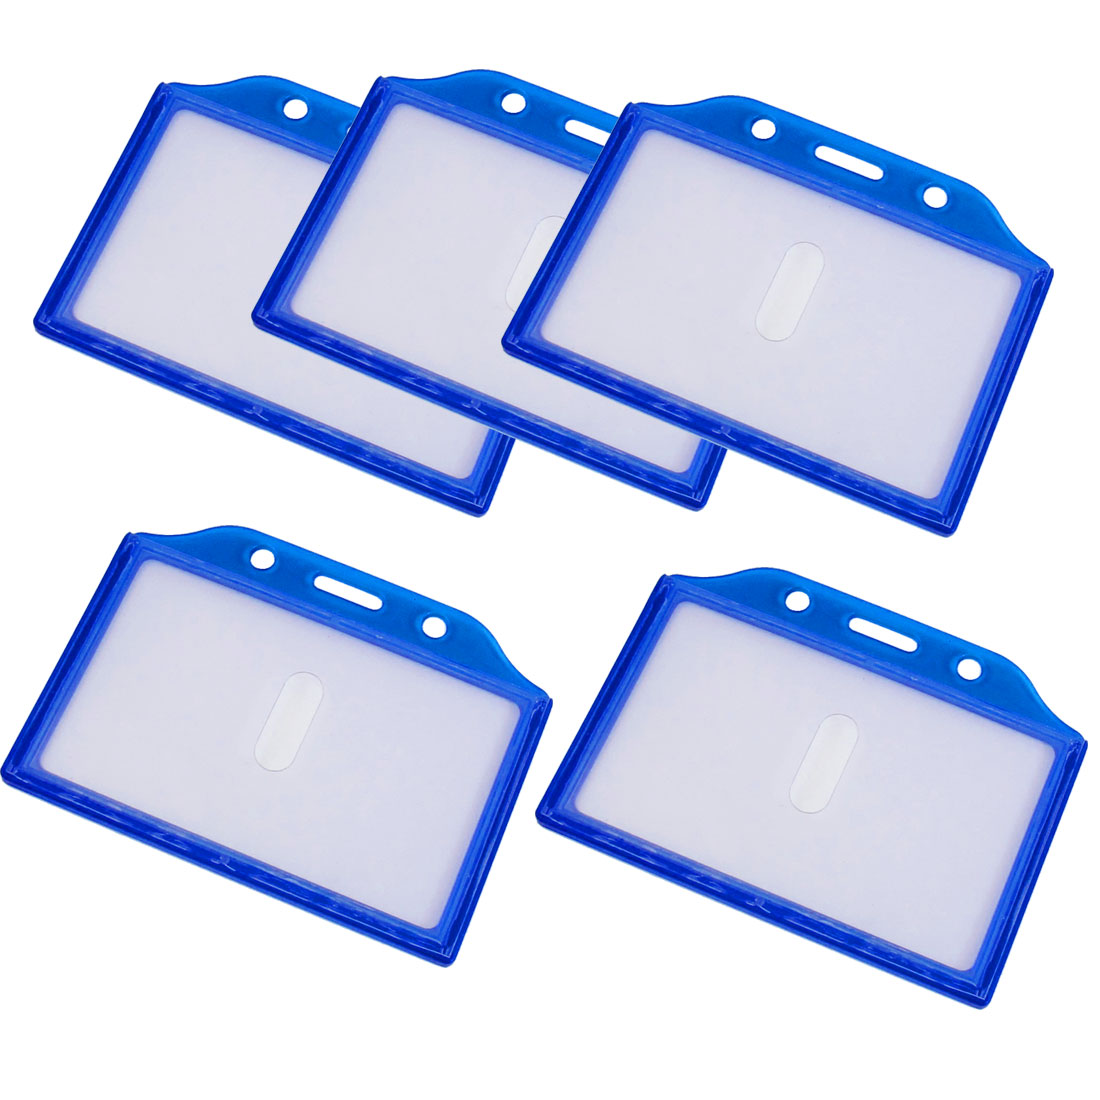 5PCS Clear Blue Plastic Horizontal Business Name Badge Credit Card Holder Case